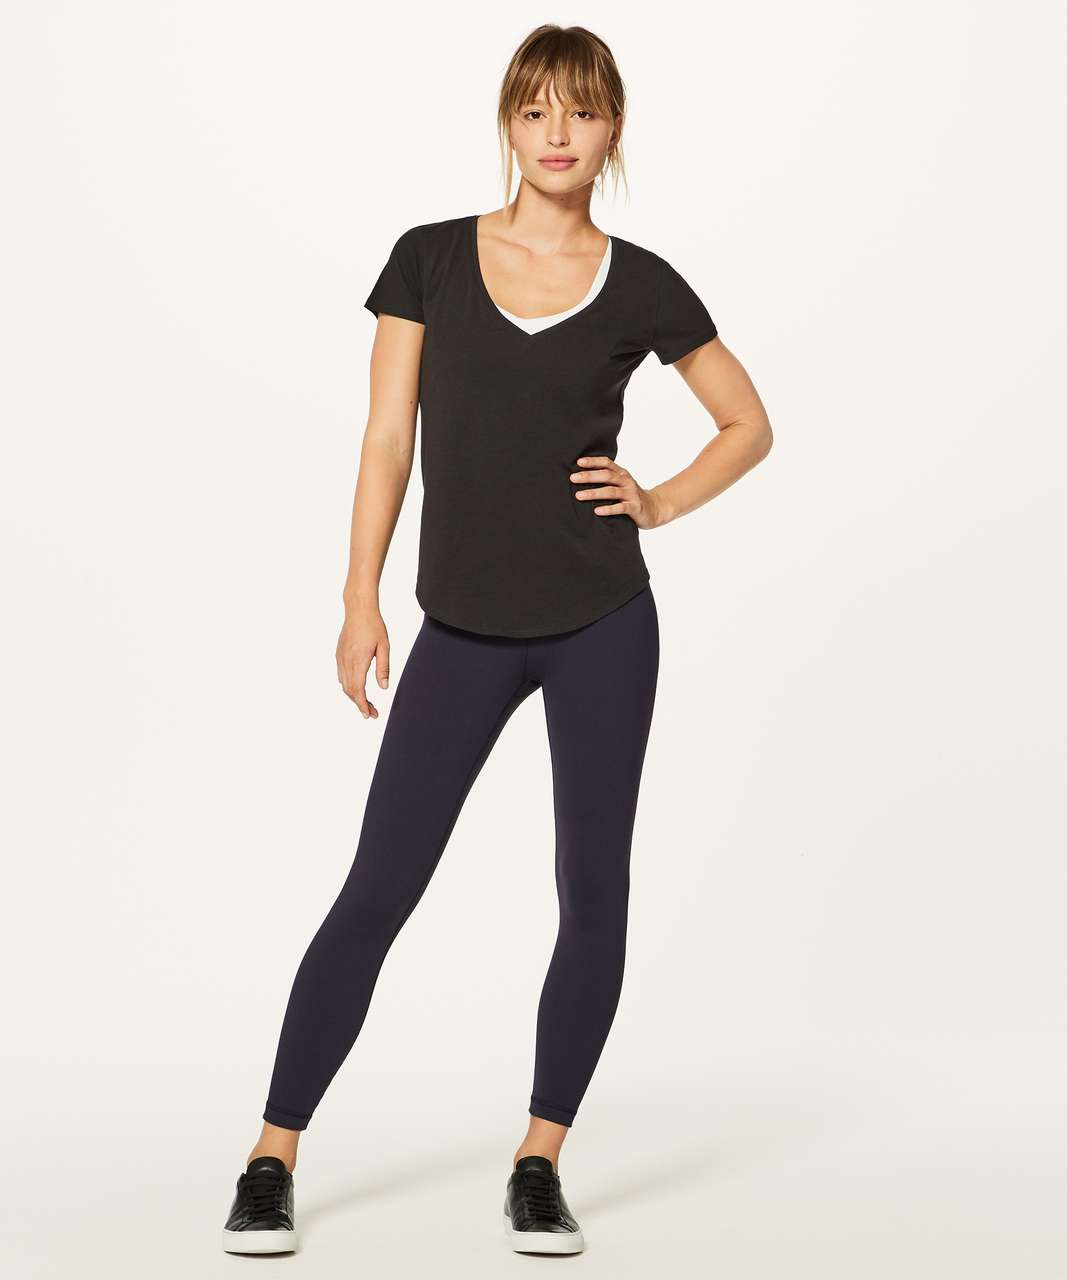 Lululemon Love Tee V - Black (First Release)